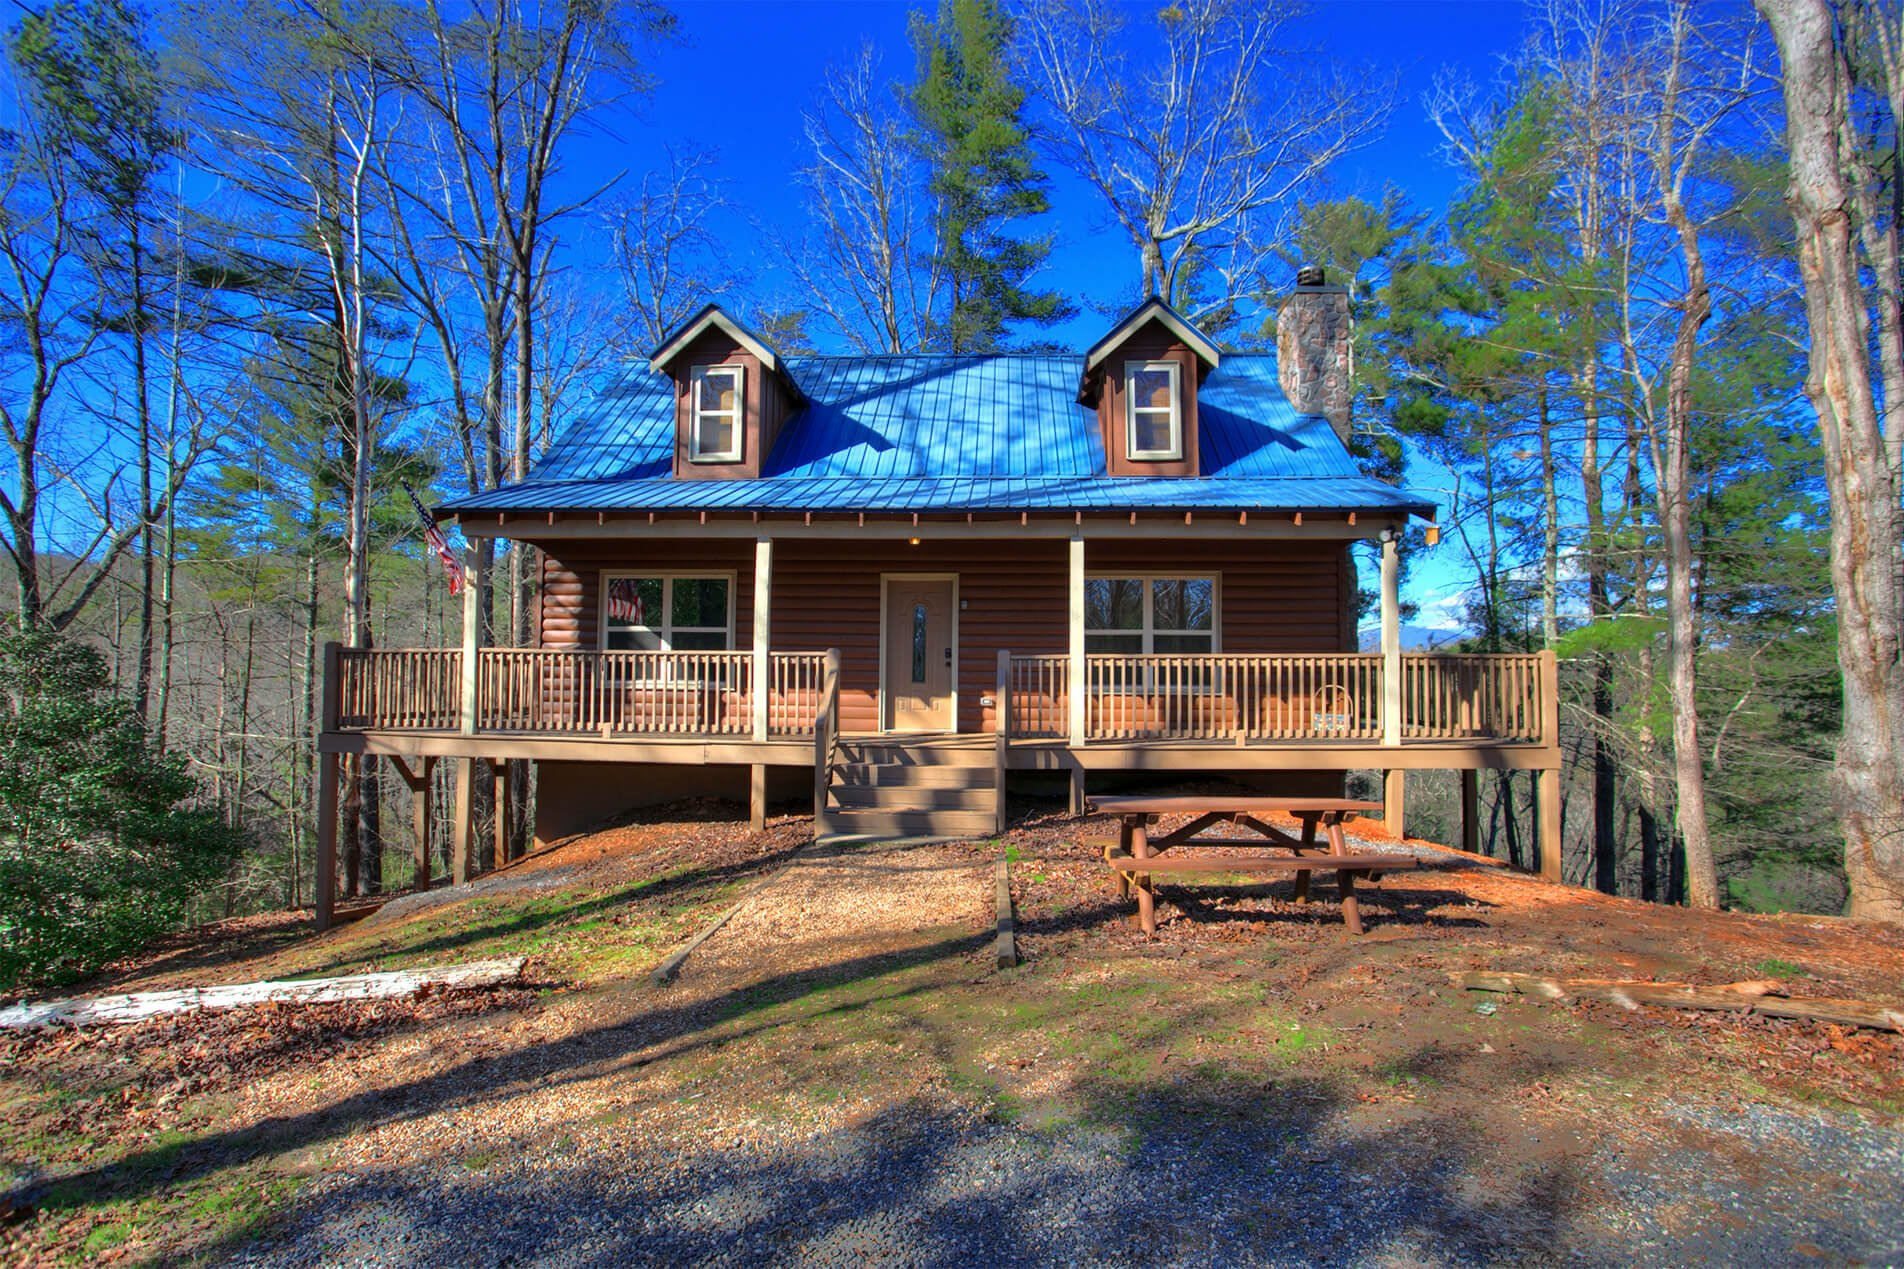 Whispering-Waters-Cedar-Creek-Cabin-Rentals-Helen-Georgia-top-banner-1